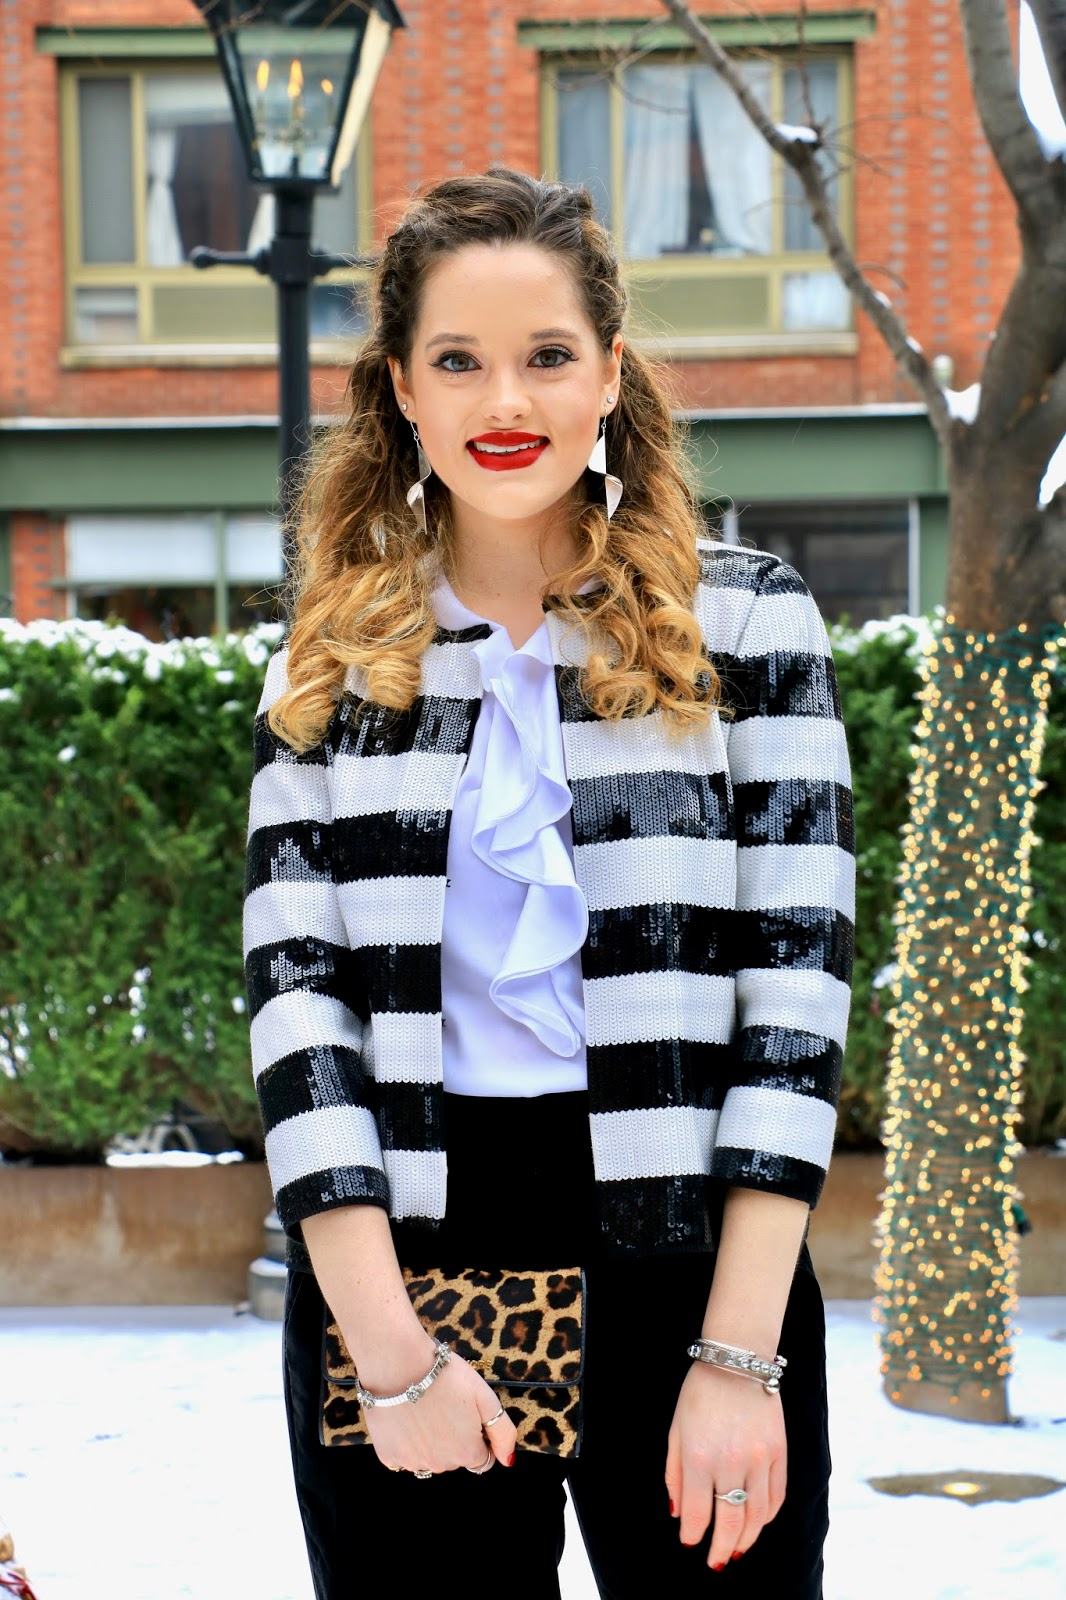 Nyc fashion blogger Kathleen Harper showing how to wear velvet pants